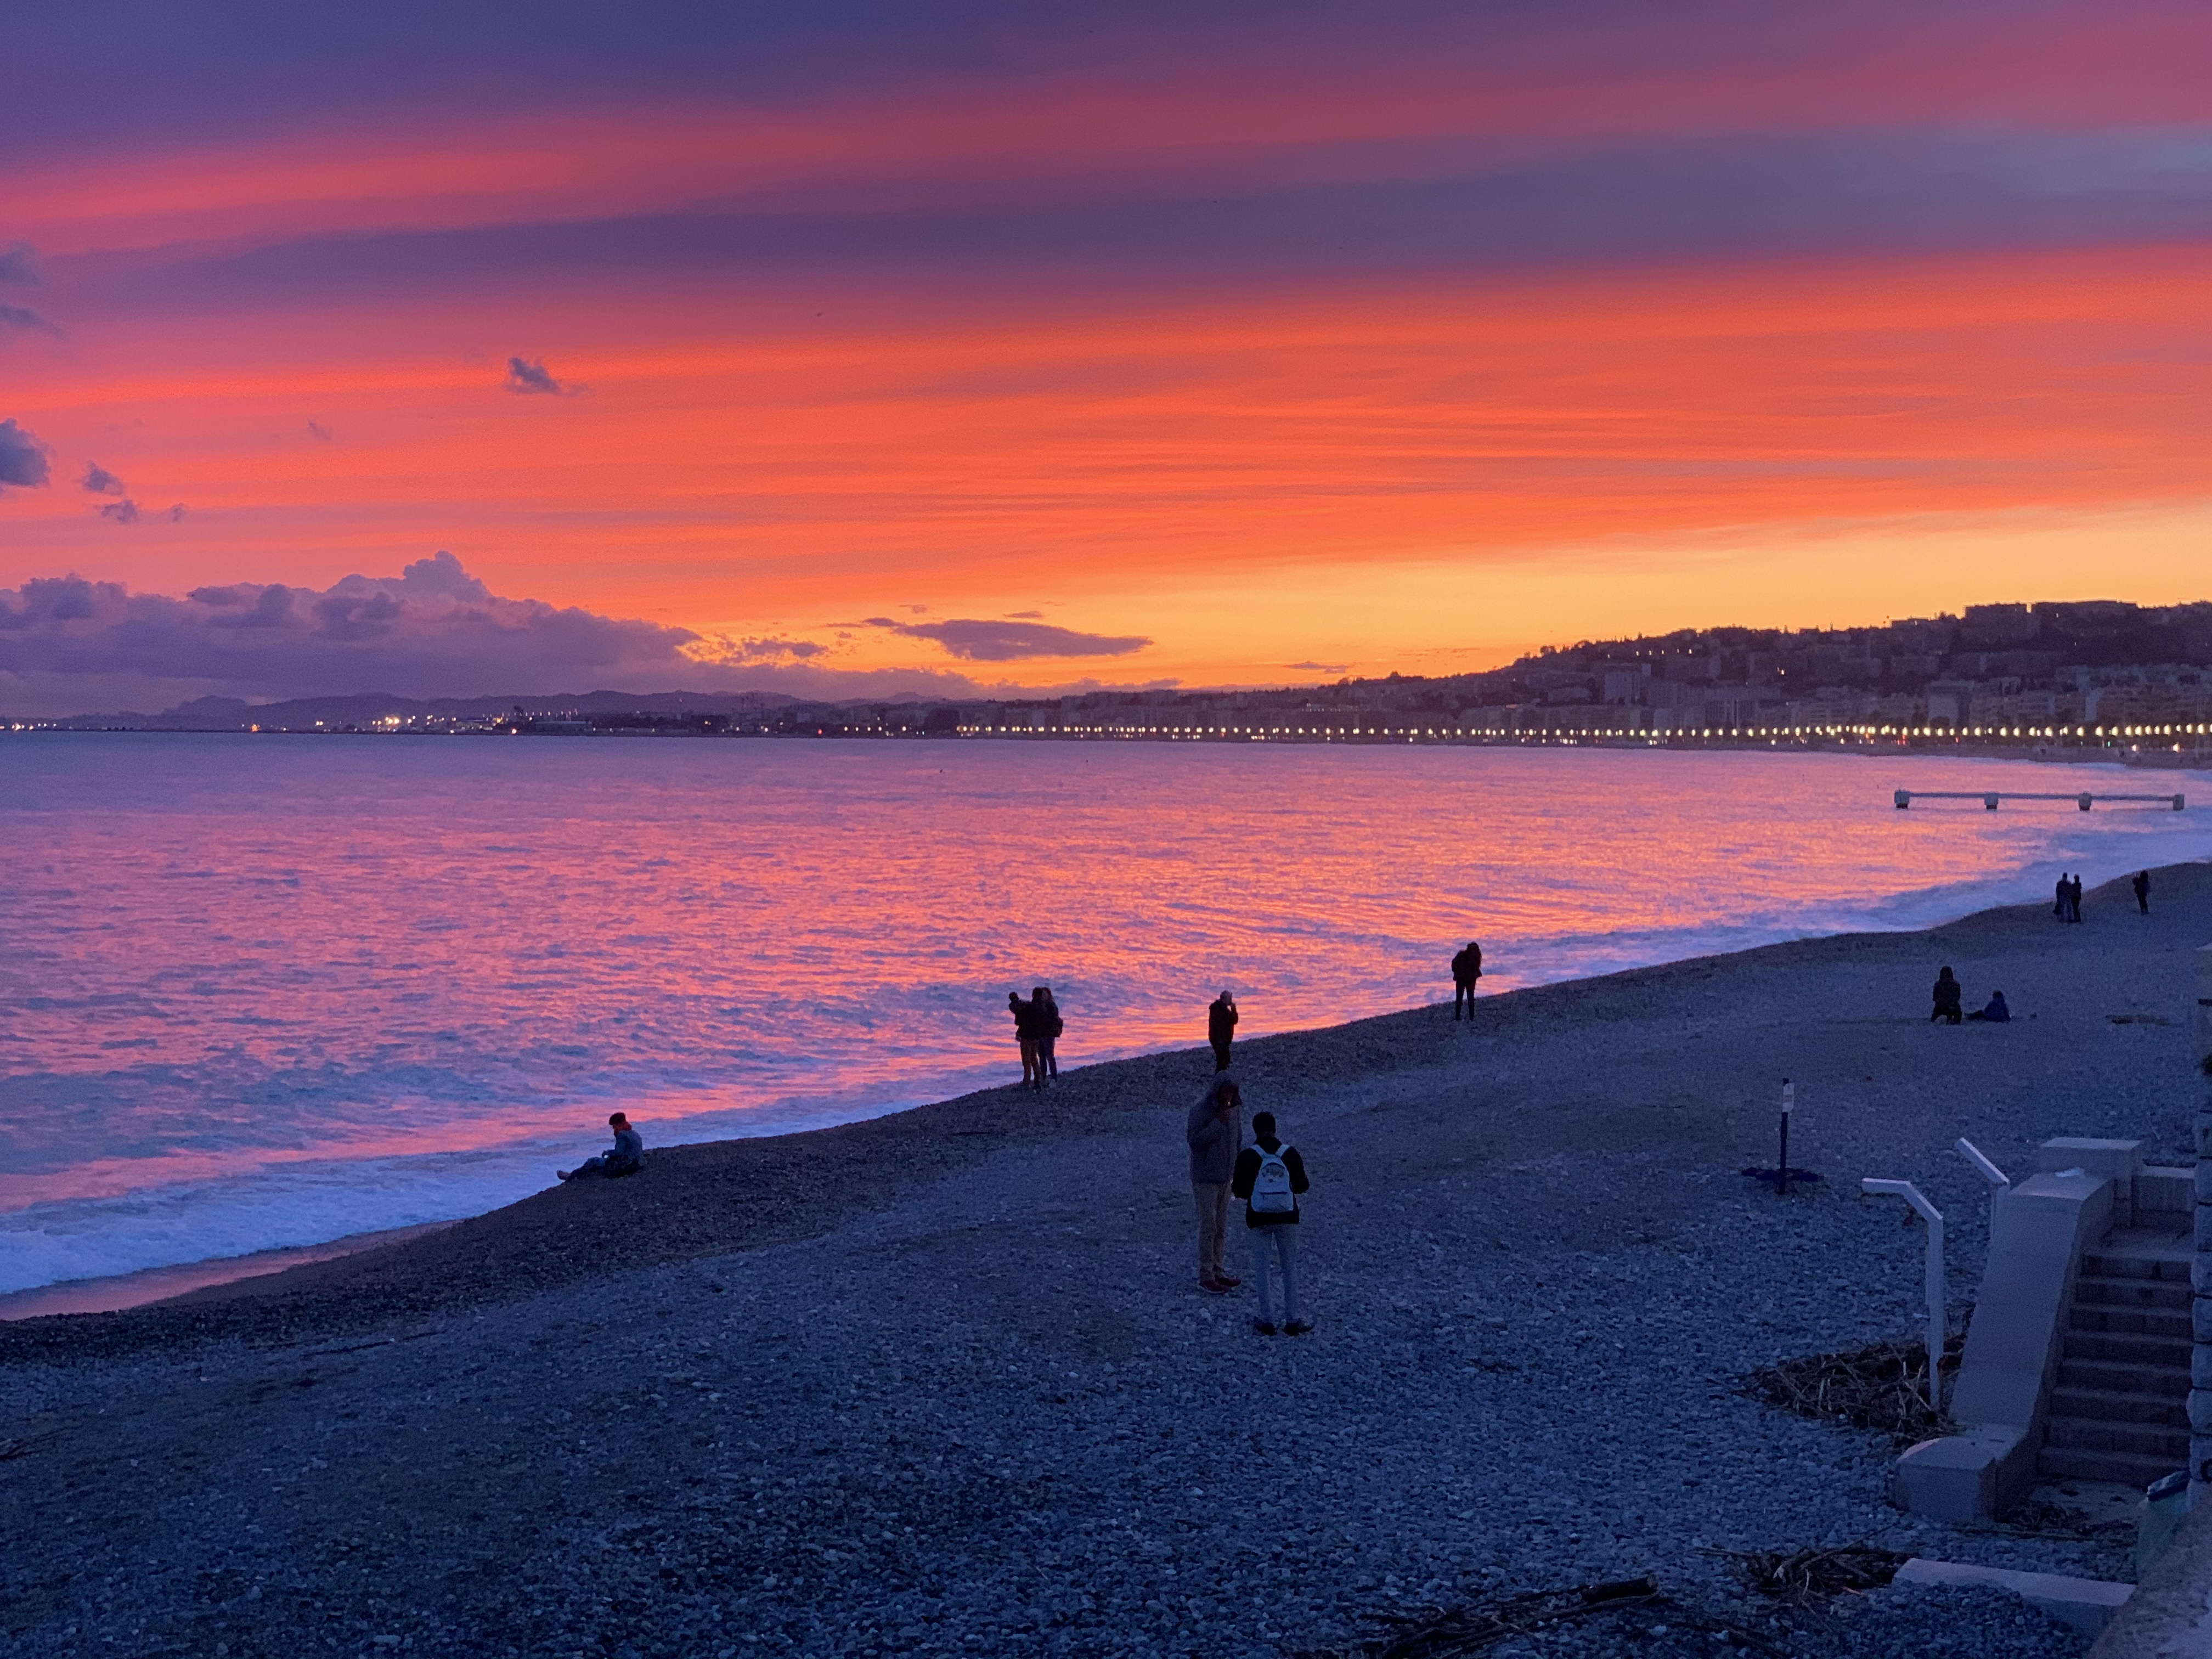 Promenade des Anglais - 6 places to take photos in Nice - Credit Summer Hotels